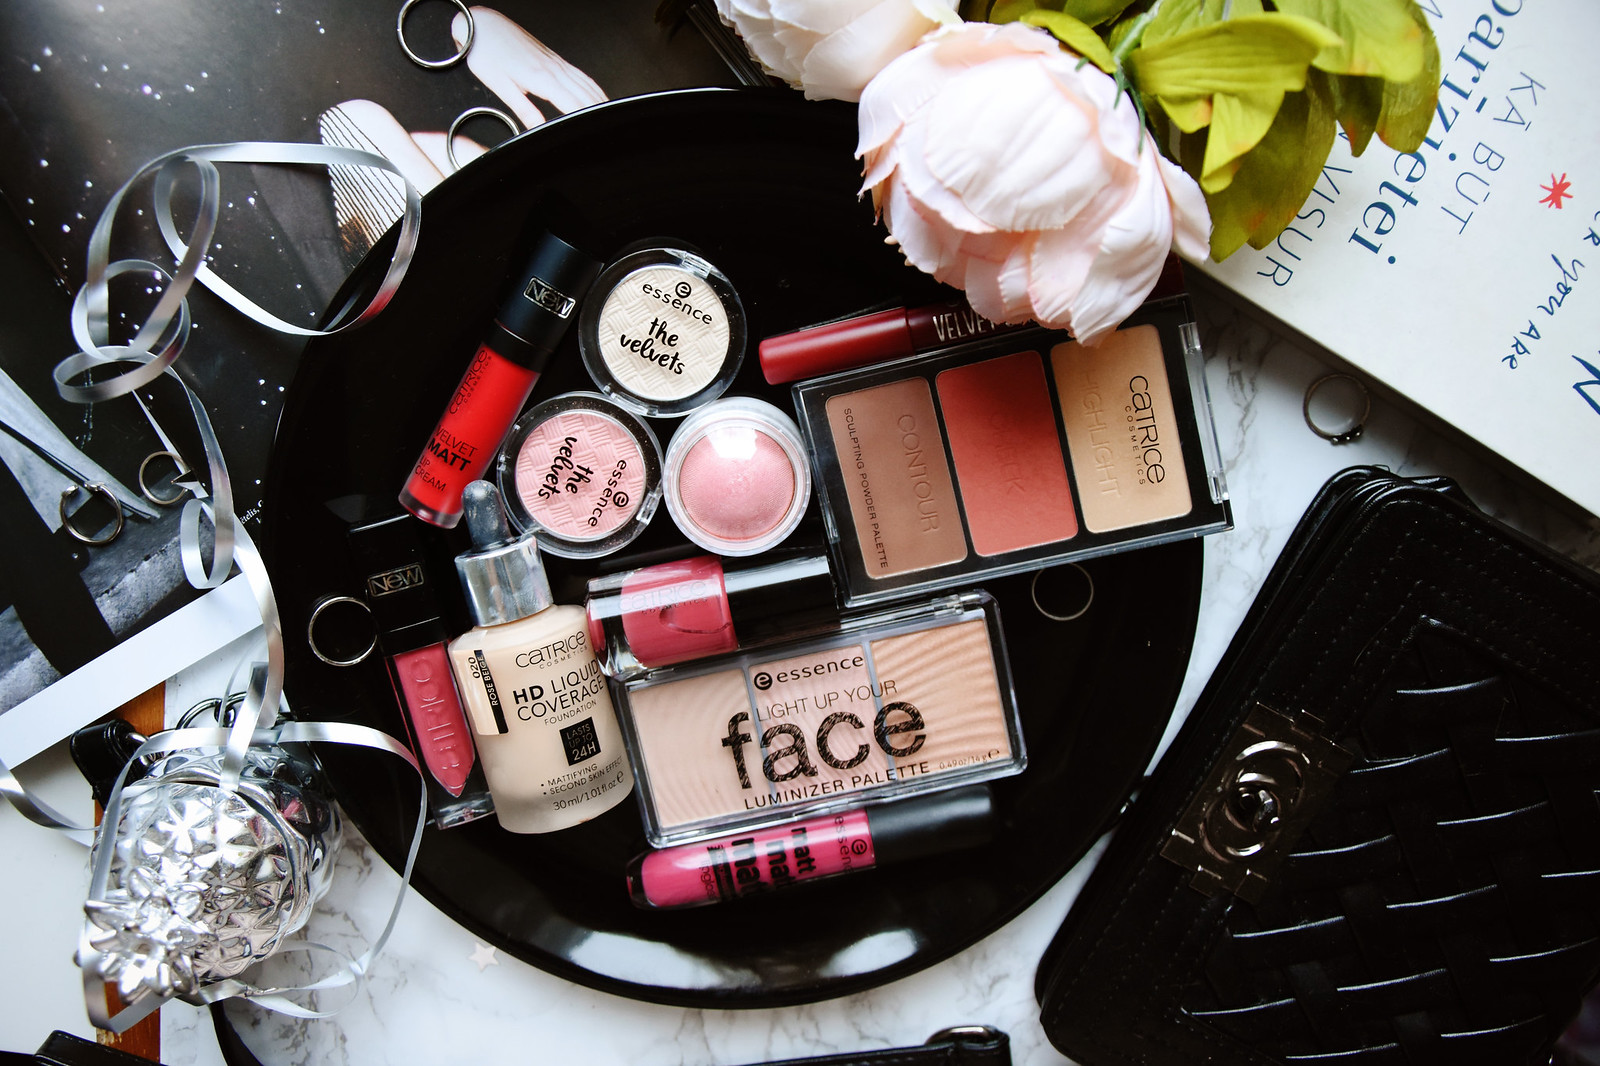 Drugstore favorites essence and Catrice